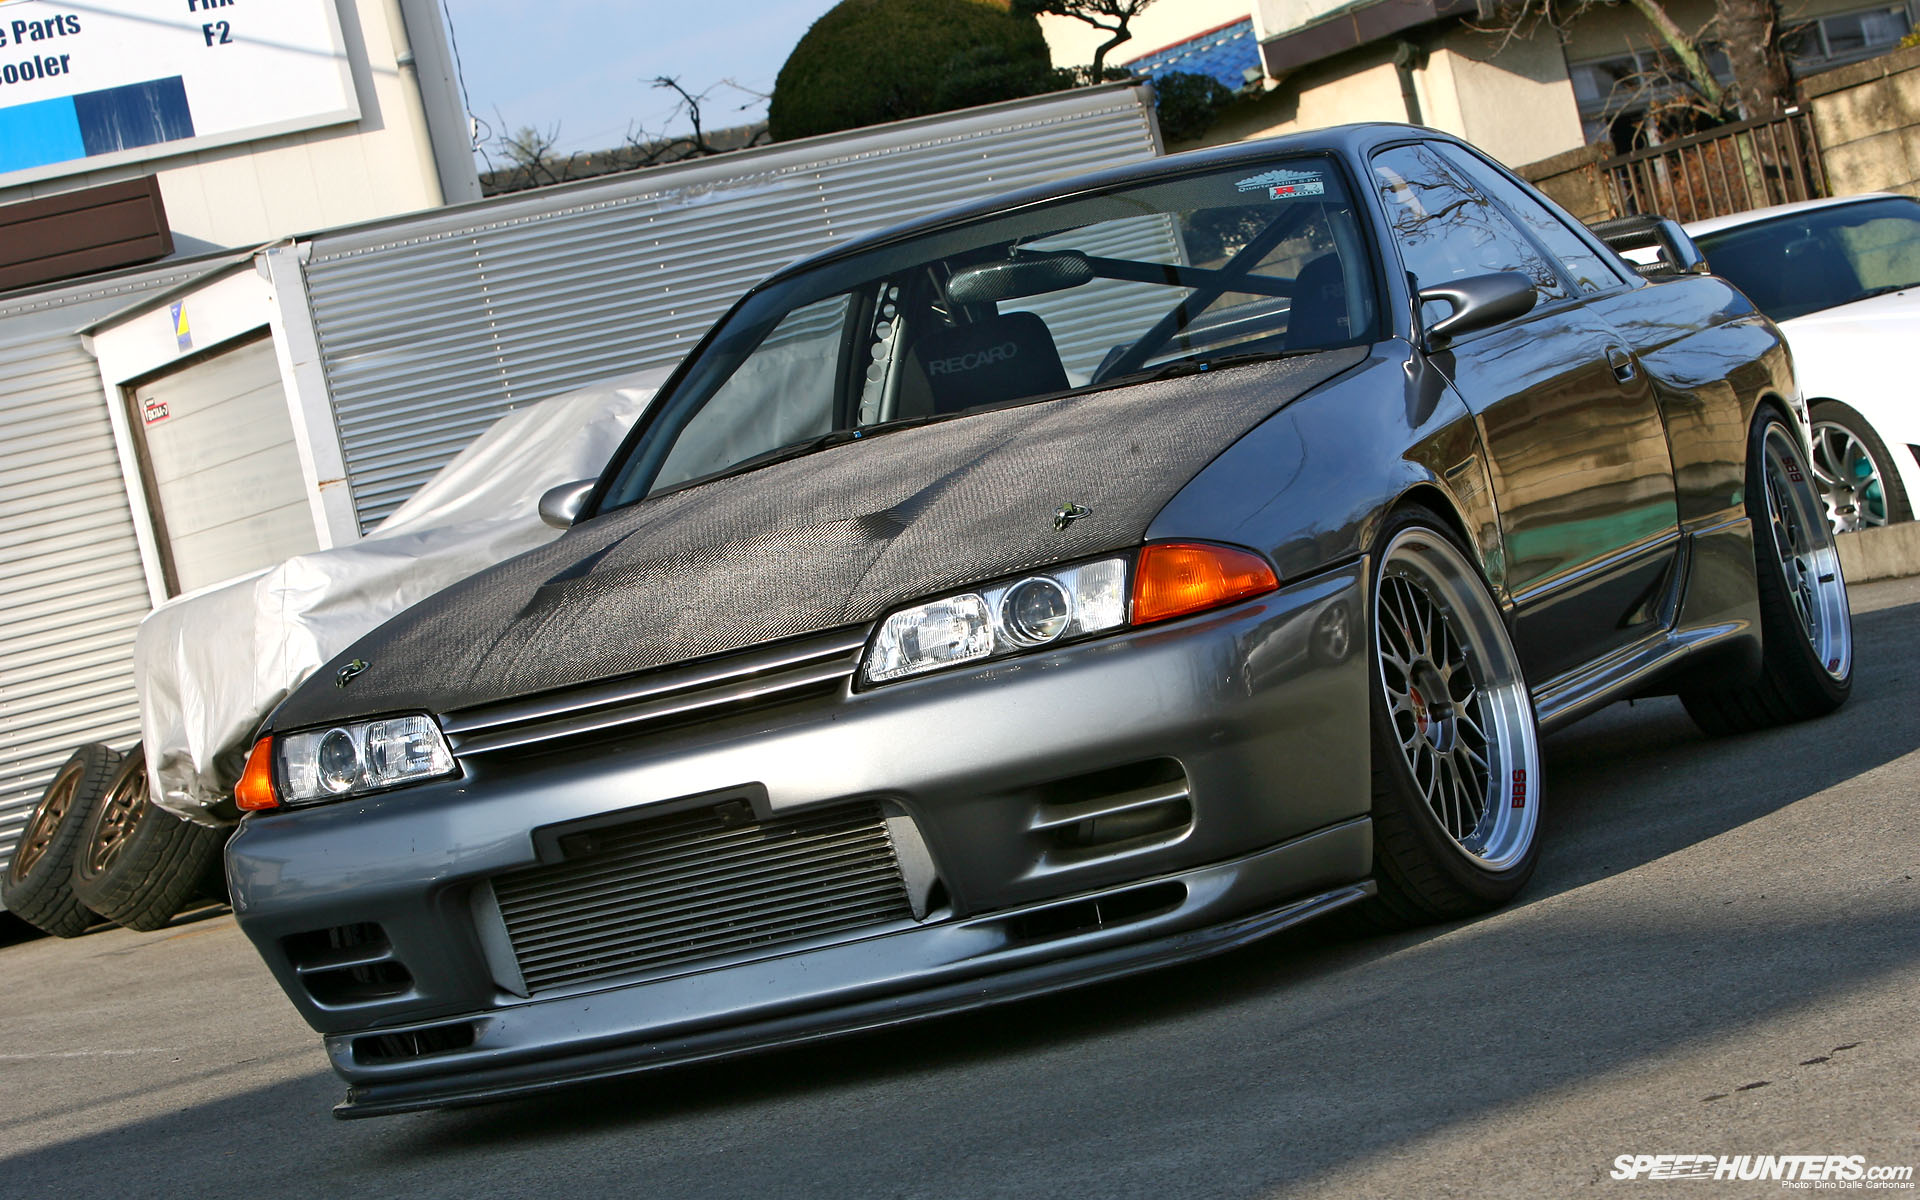 Cars That Start With C >> Cars nissan nissan skyline nissan skyline r32 wallpaper | 1920x1200 | 17062 | WallpaperUP